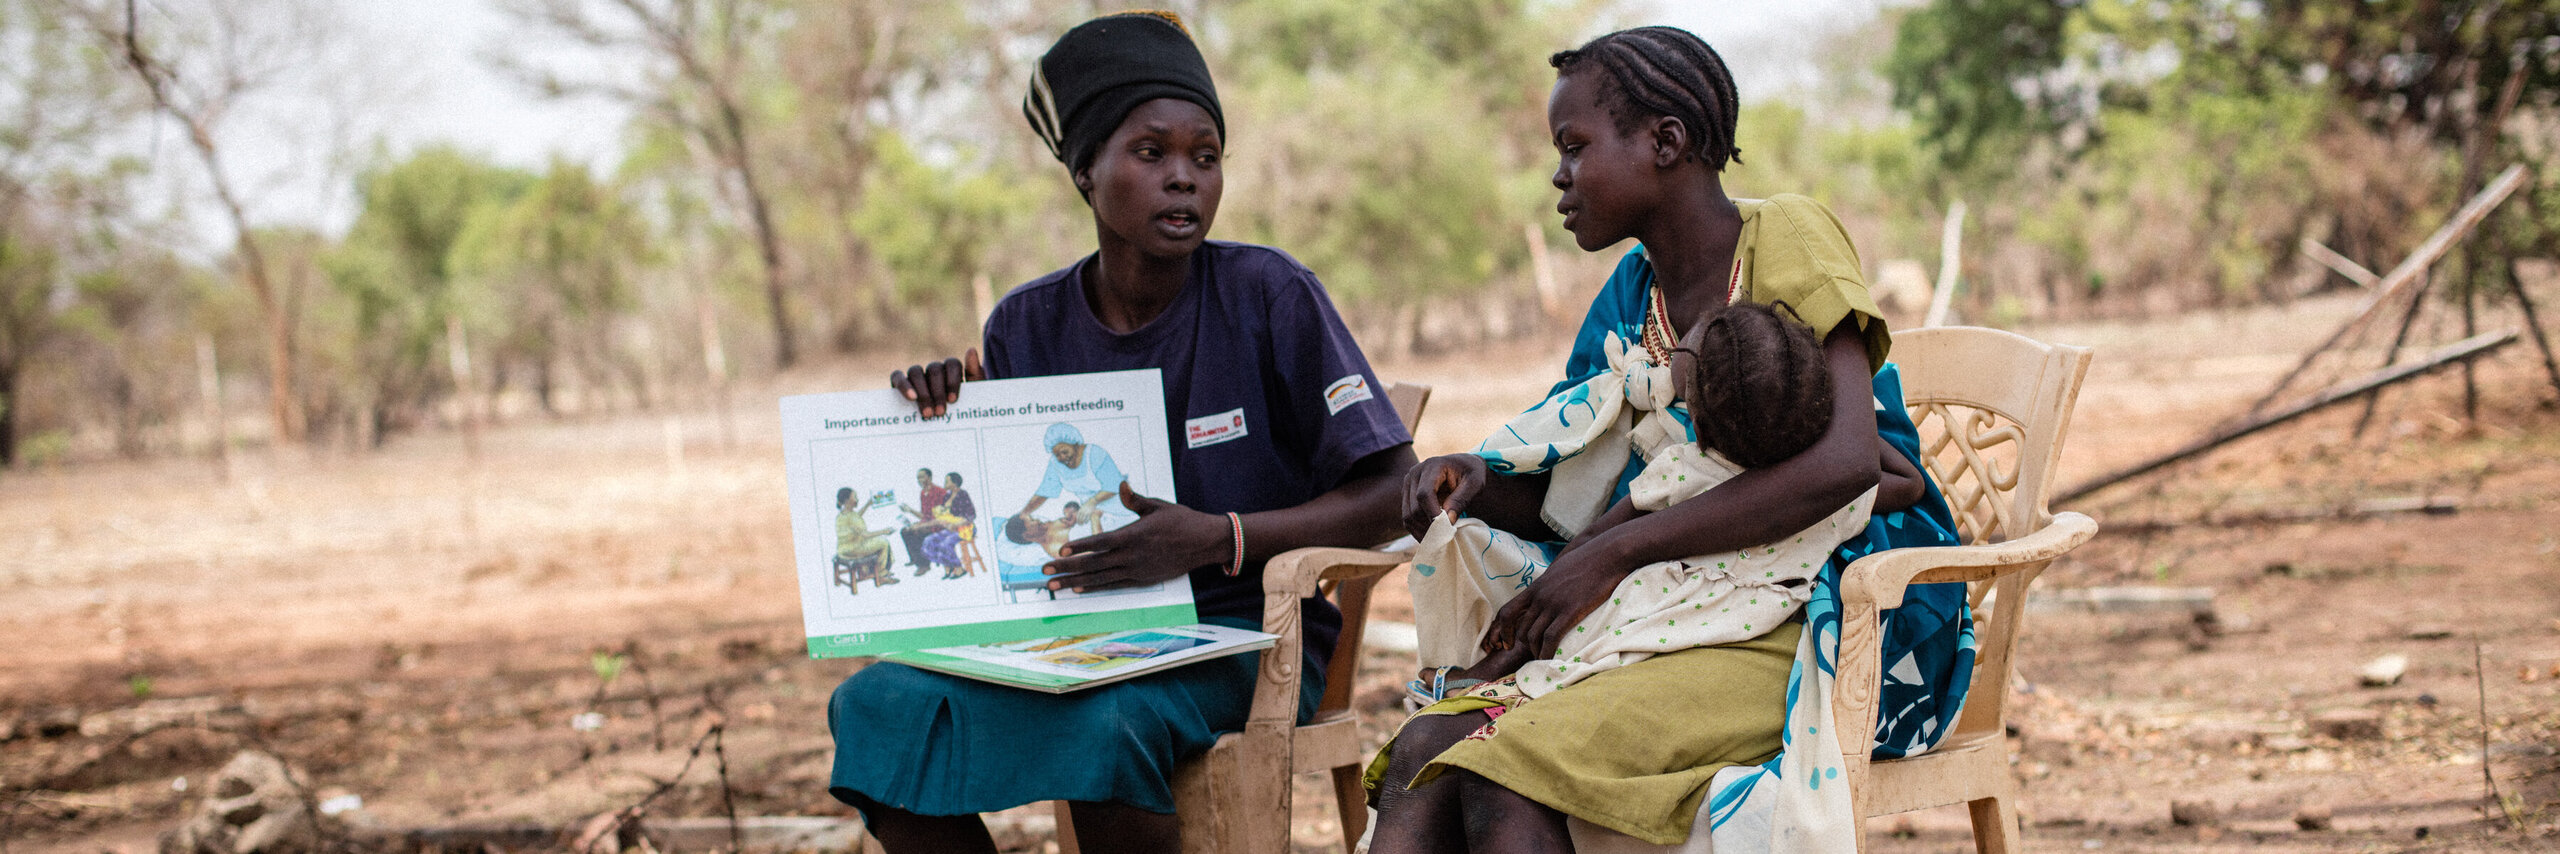 A mother explains to another mother with an infant the advantages of breastfeeding in a field.